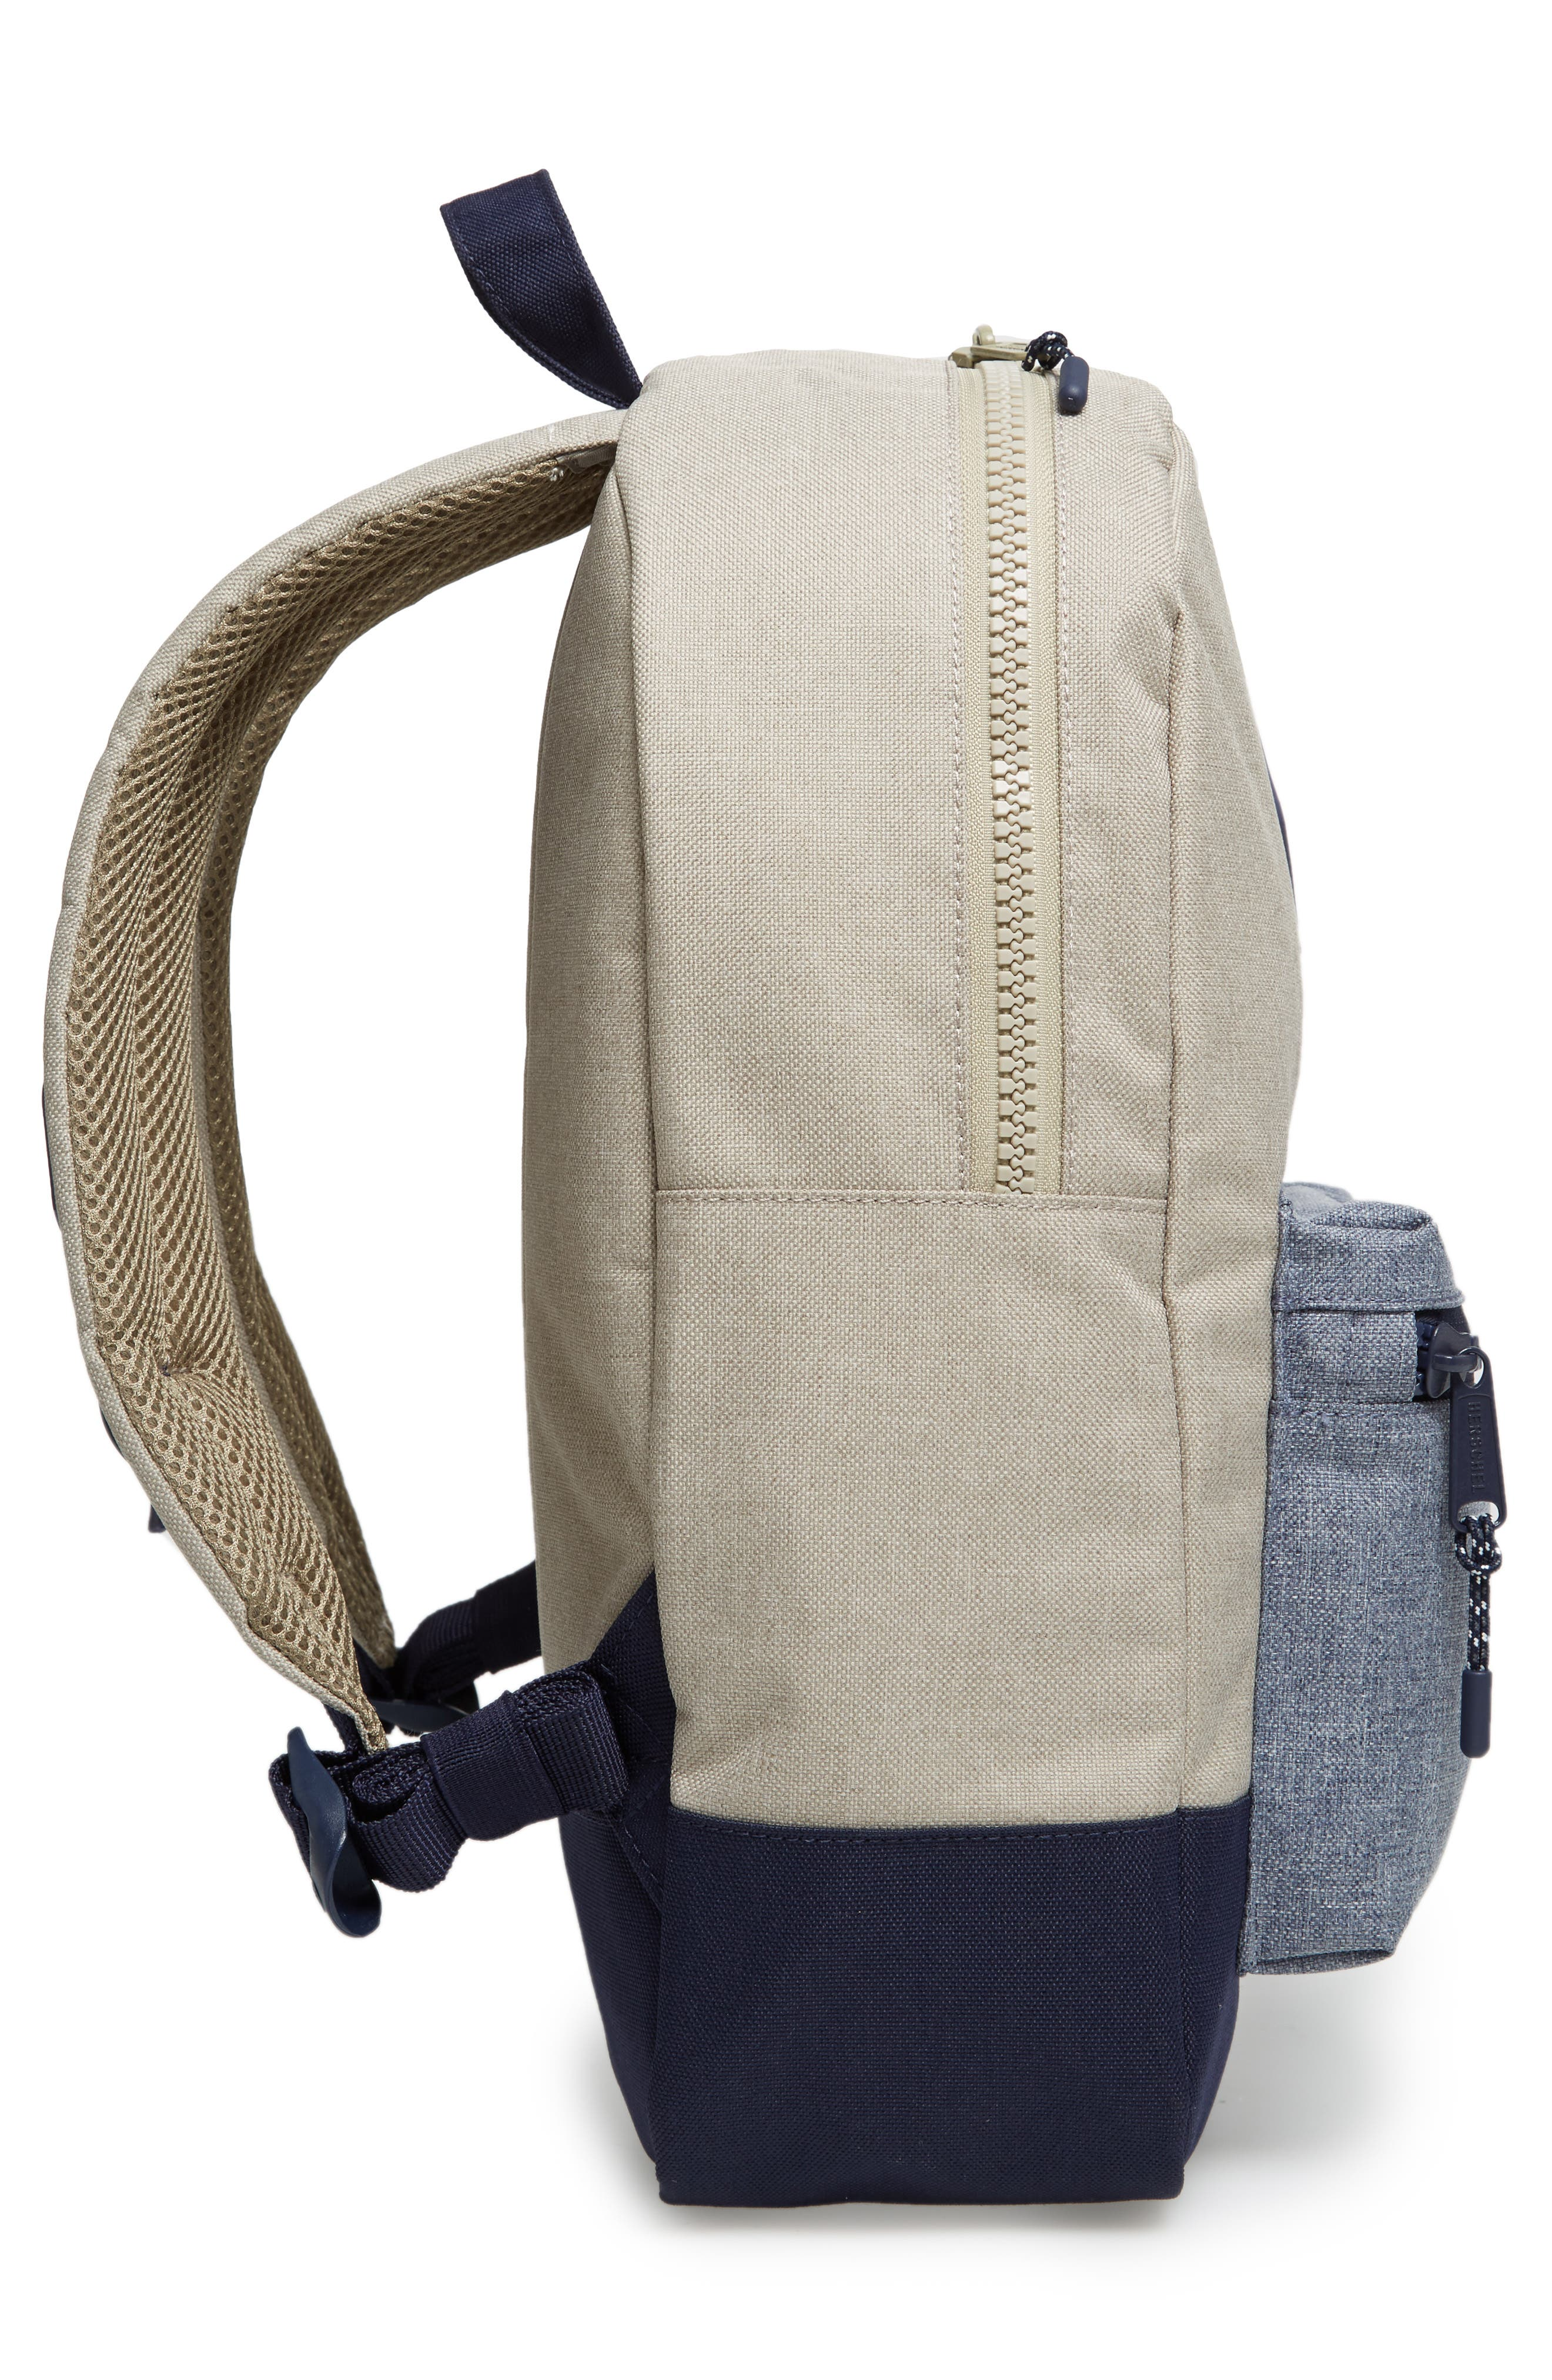 Heritage Backpack,                             Alternate thumbnail 4, color,                             250